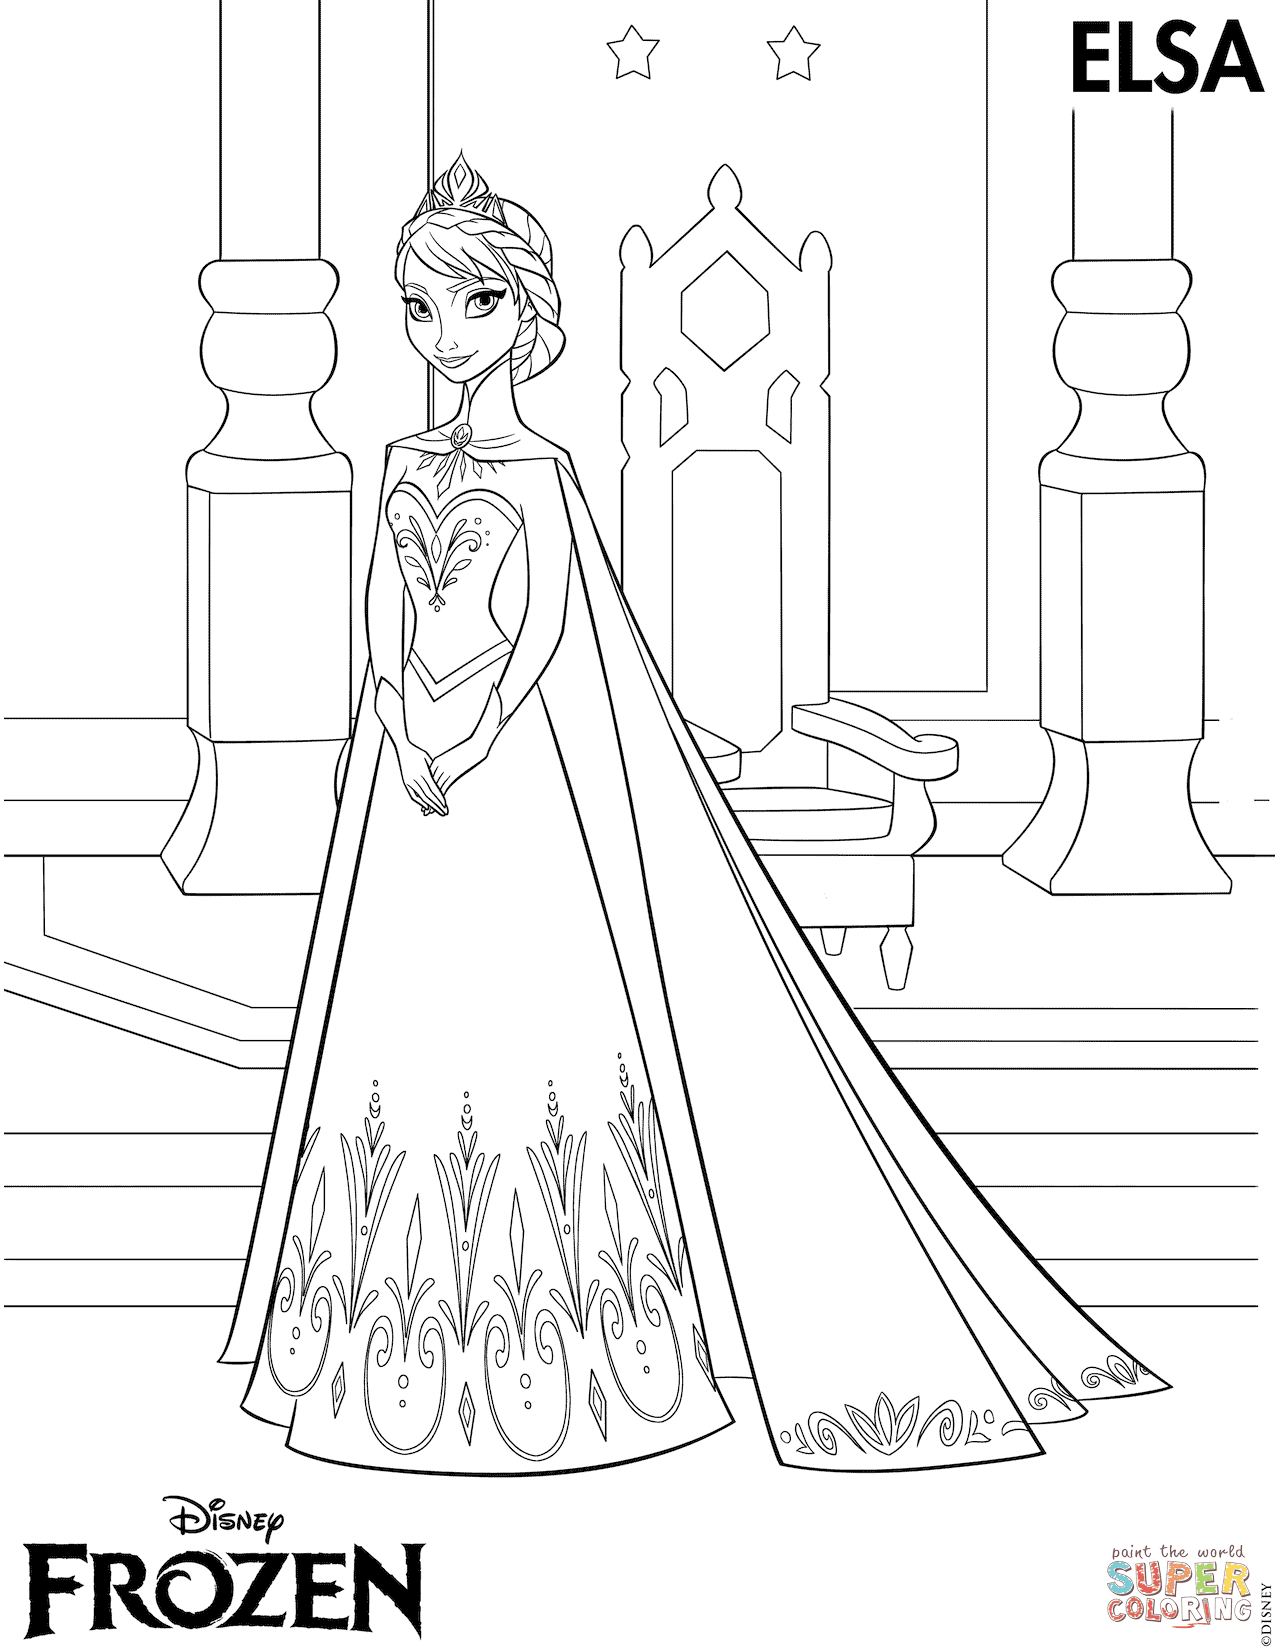 740 Frozen Coloring Pages Pdf Download For Free